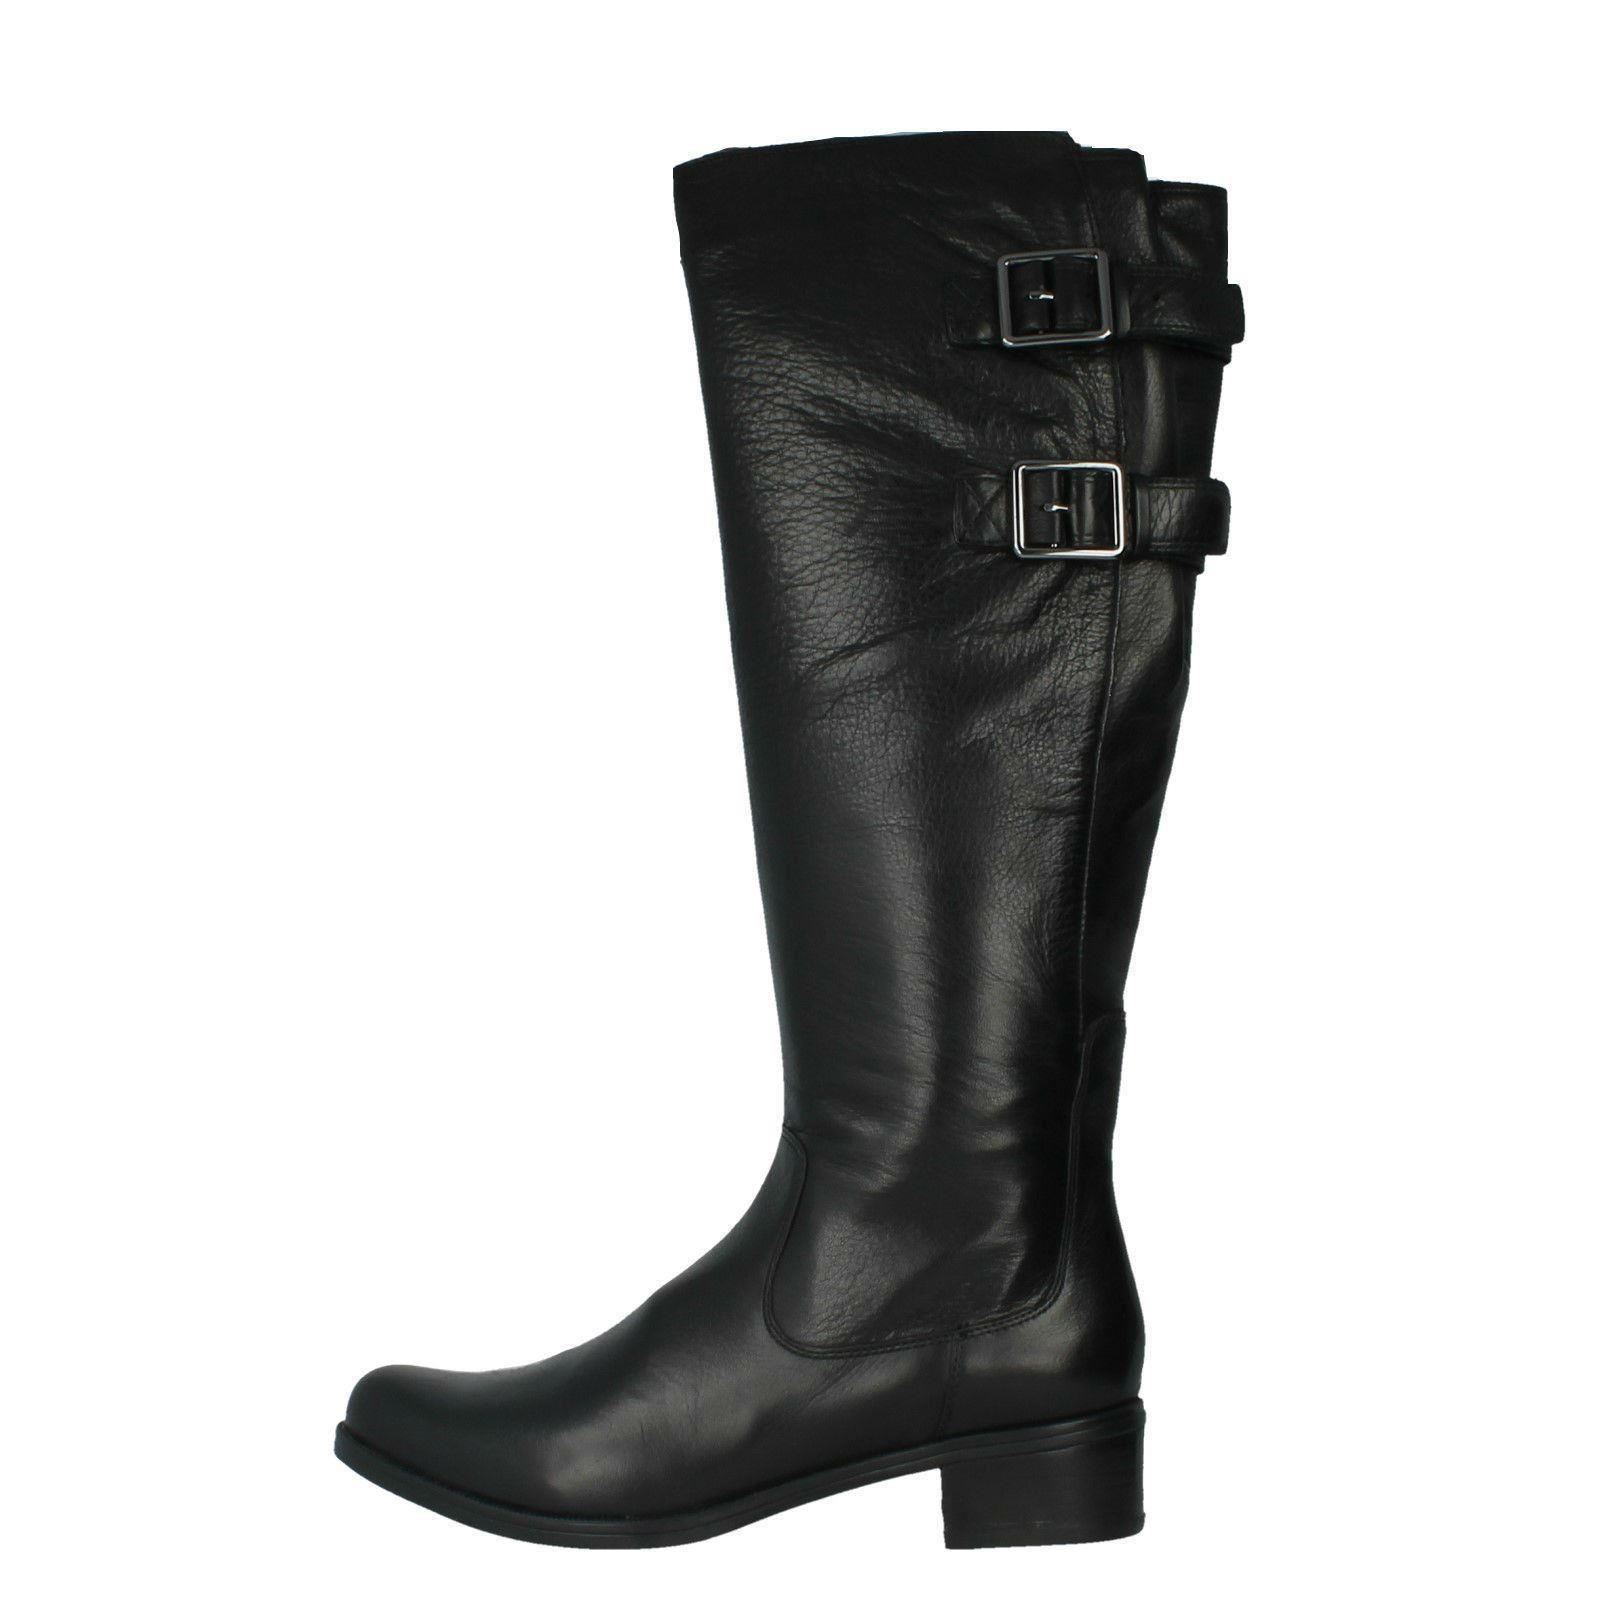 Shop Clarks for stylish and comfortable shoes for Women, Men, Girls and Boys plus get Free Shipping and Free Returns every day! Clarks® Shoes Official Site - Comfortable Shoes, Boots & More We've noticed that your browser does not support JavaScript.